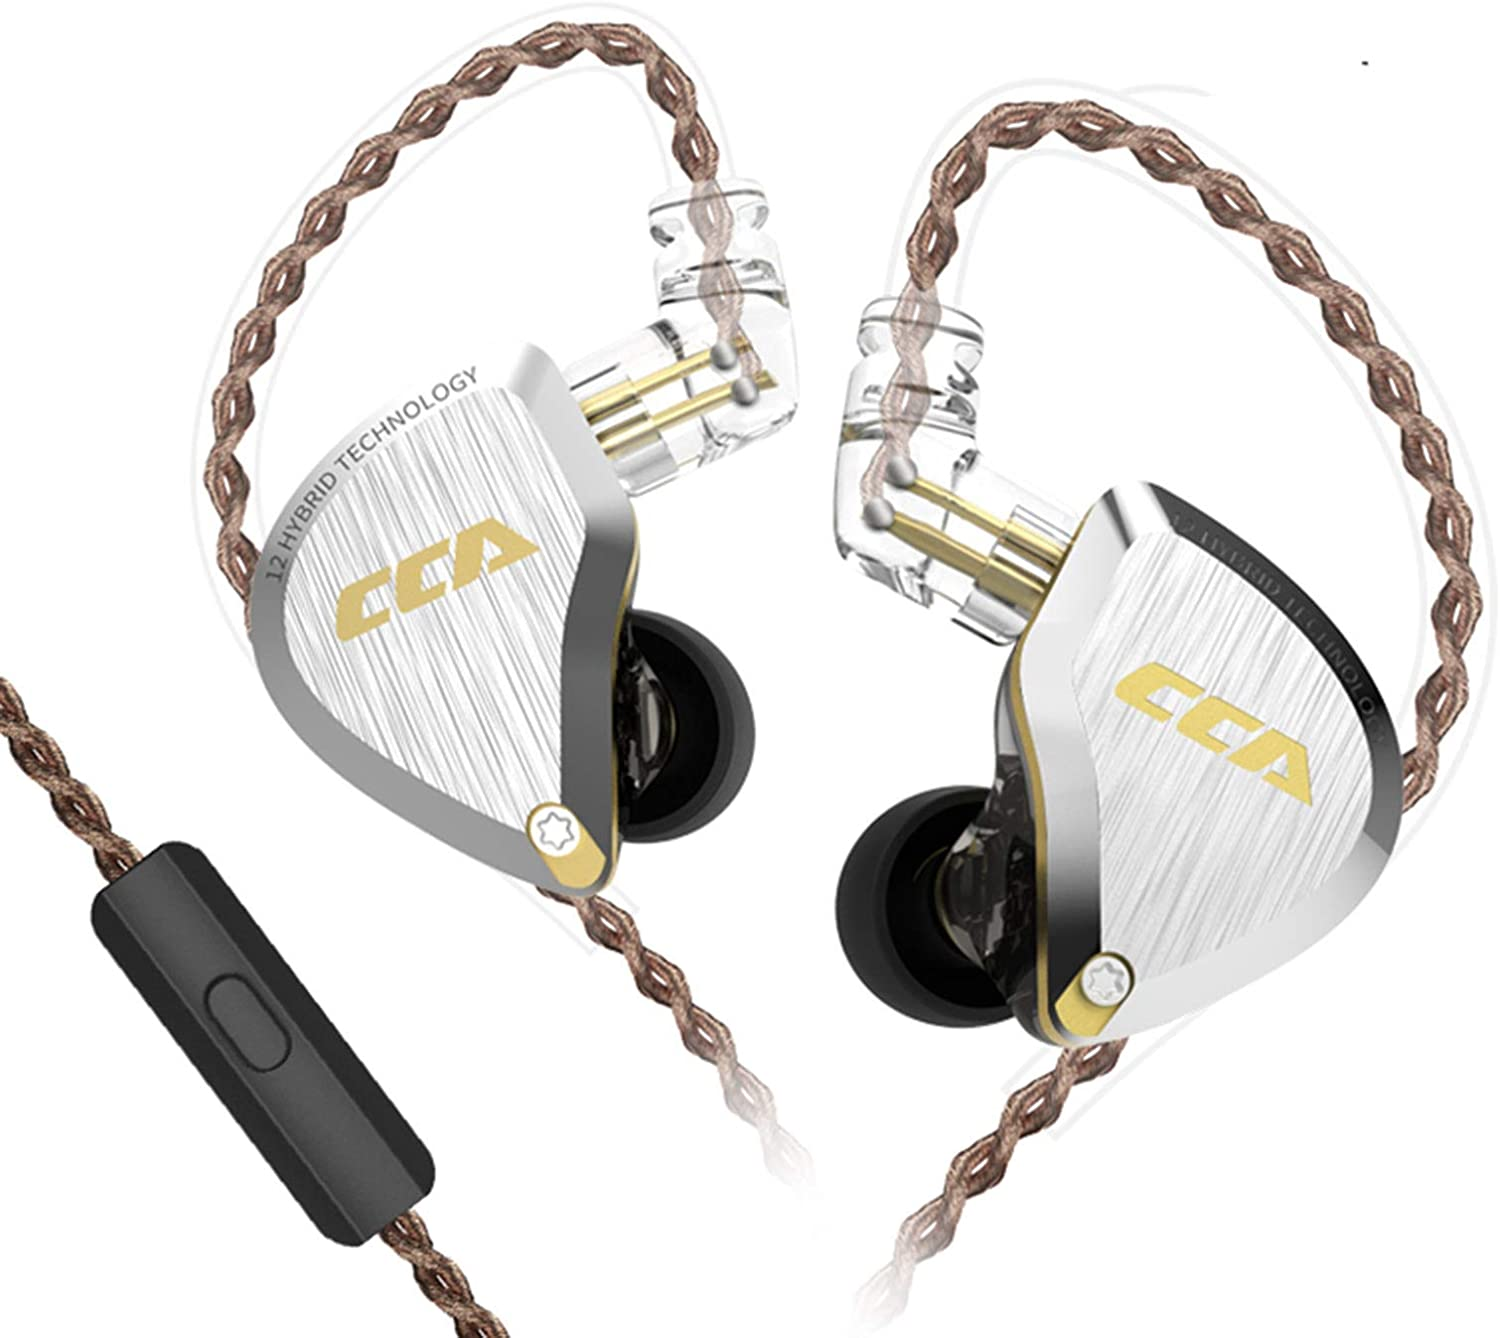 CCA C12 in-Ear Earphones, 5BA+1DD in Ear Monitor Hybrid HiFi Stereo Noise Isolating IEM Wired Earphones/Earbuds/Headphones with Detachable Cable CPin for Musician Audiophile (with MIC, Gold)